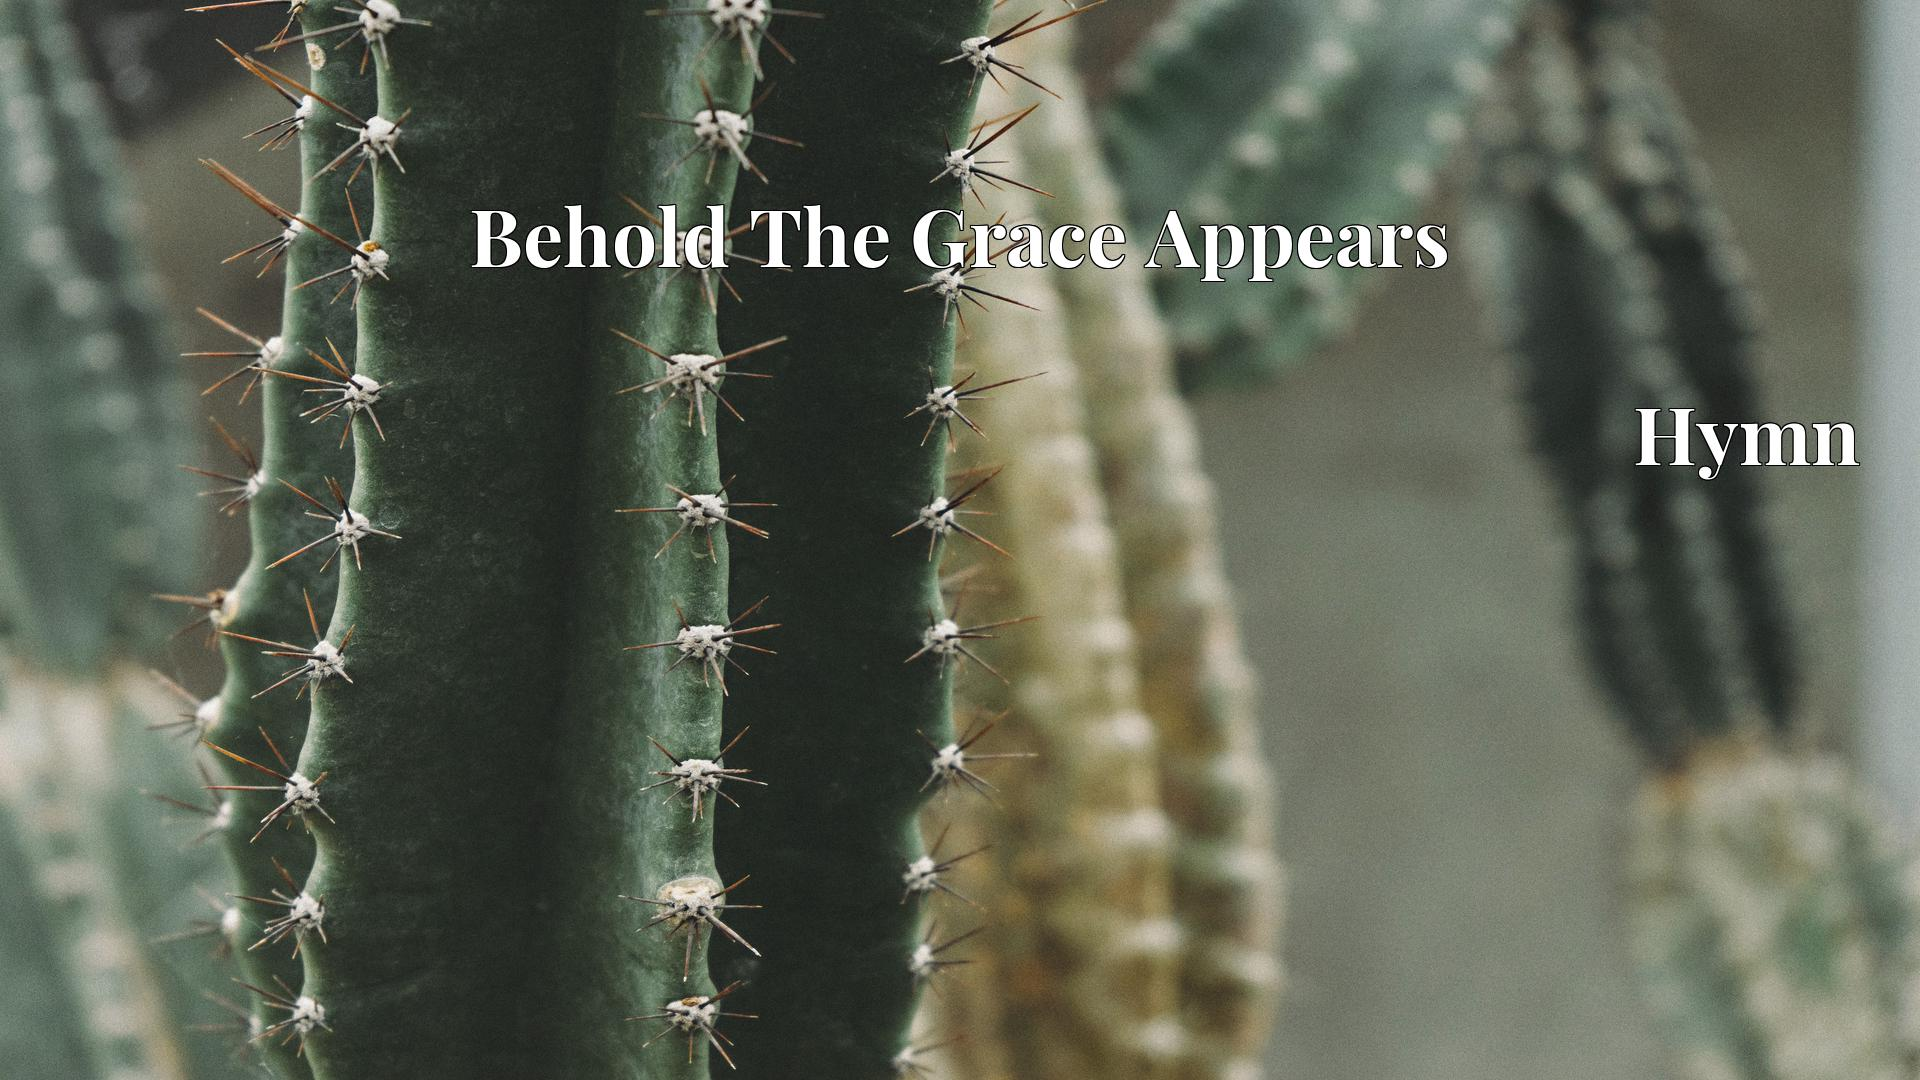 Behold The Grace Appears Hymn